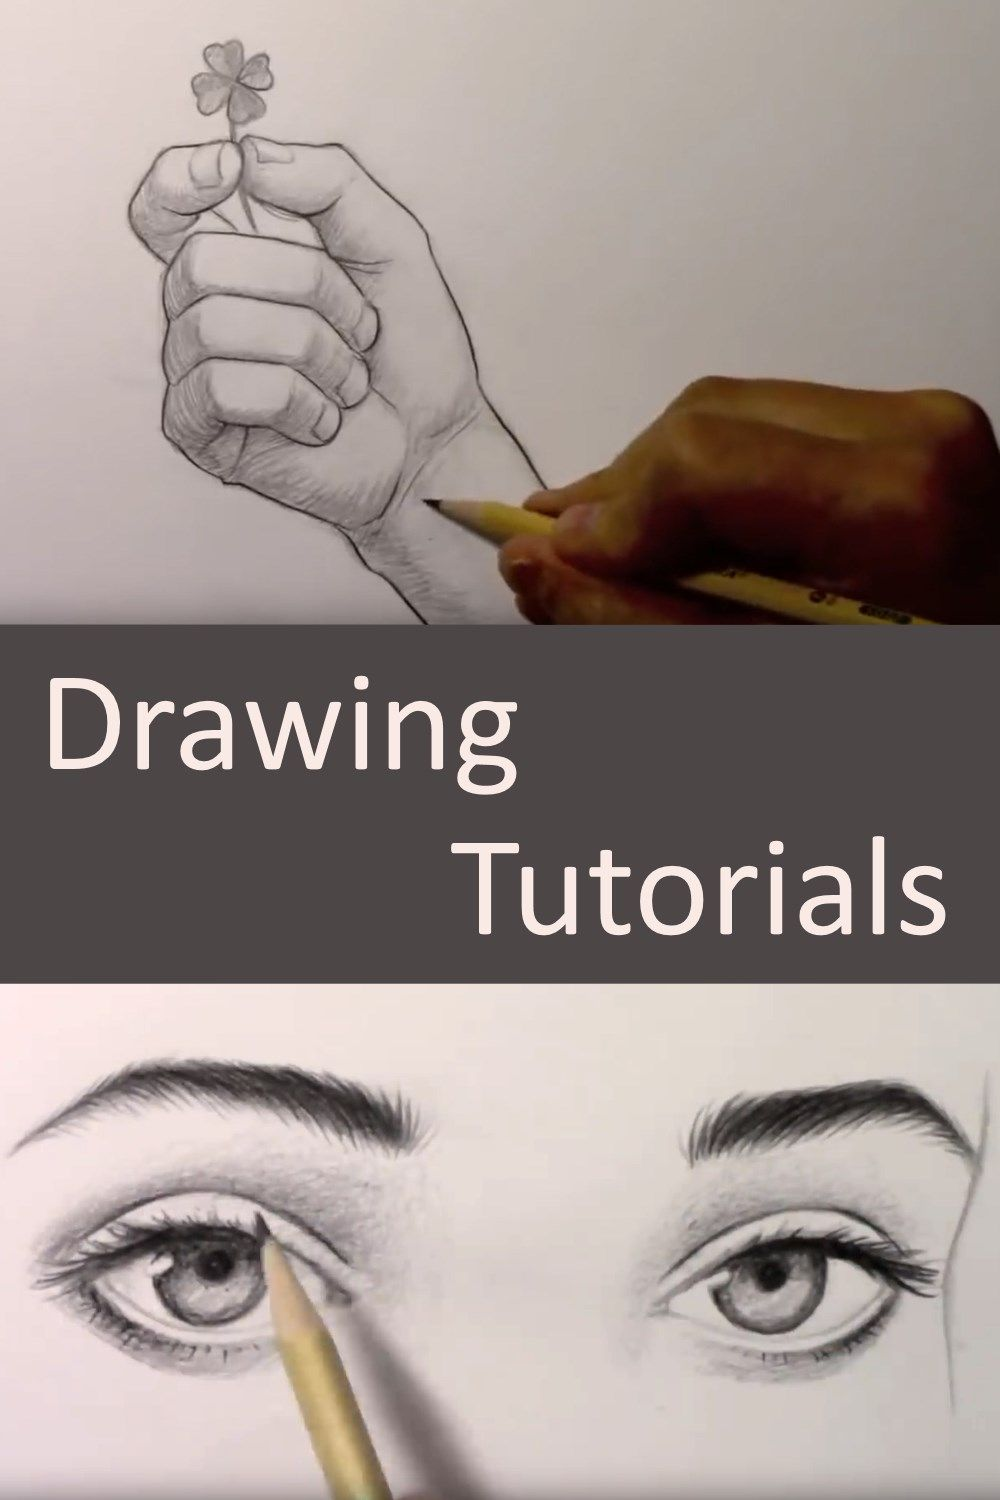 Best Channels And Instructors For Learning To Draw And Paint